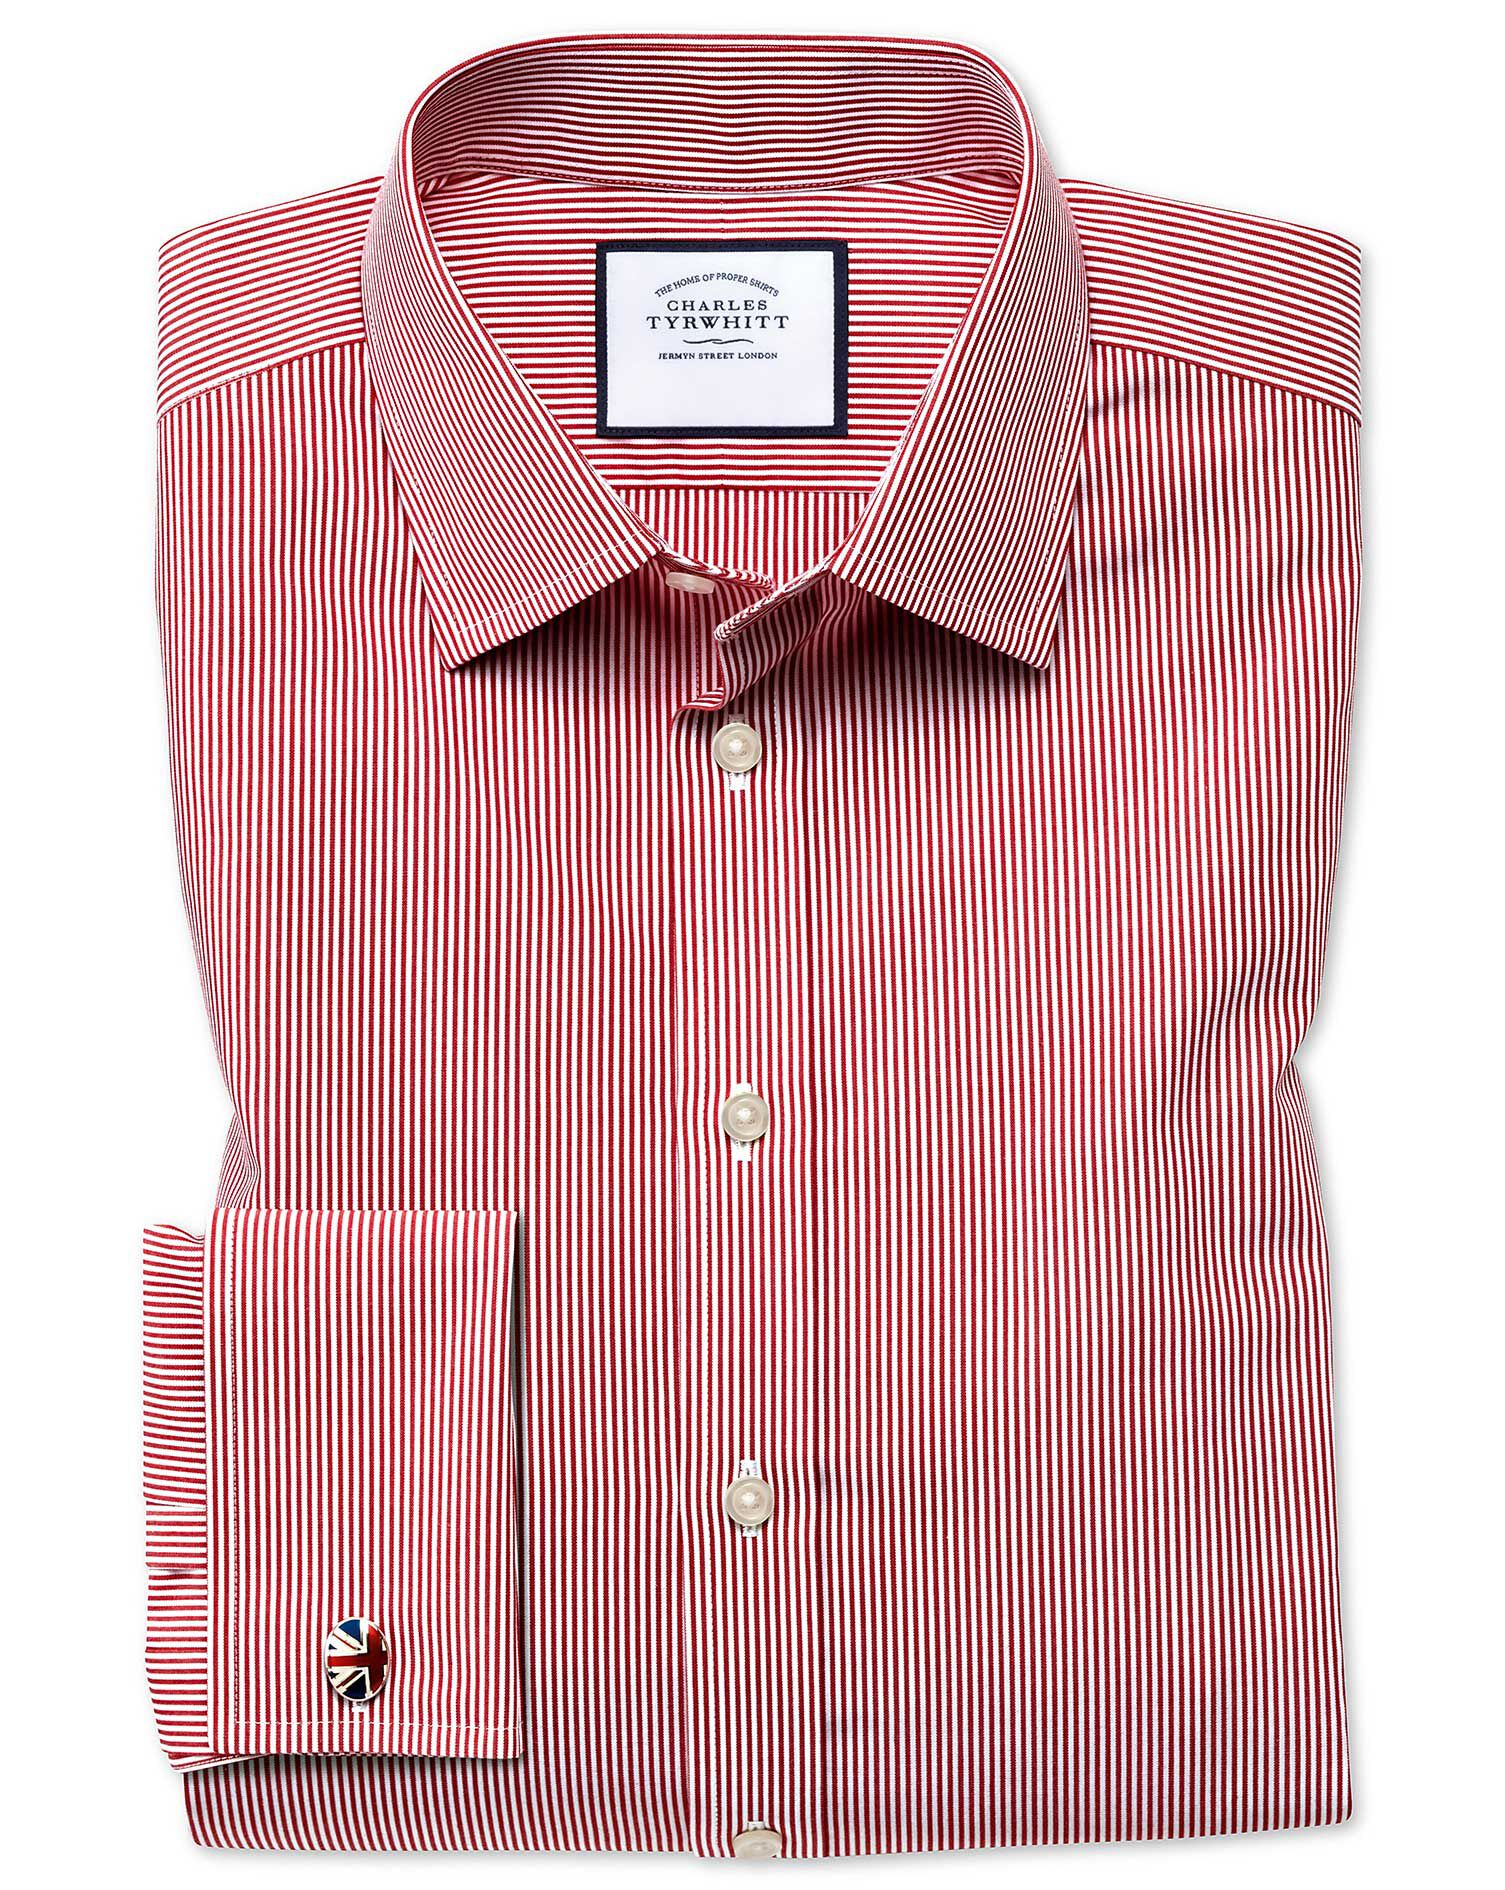 Slim Fit Non-Iron Bengal Stripe Red Cotton Formal Shirt Double Cuff Size 15.5/33 by Charles Tyrwhitt